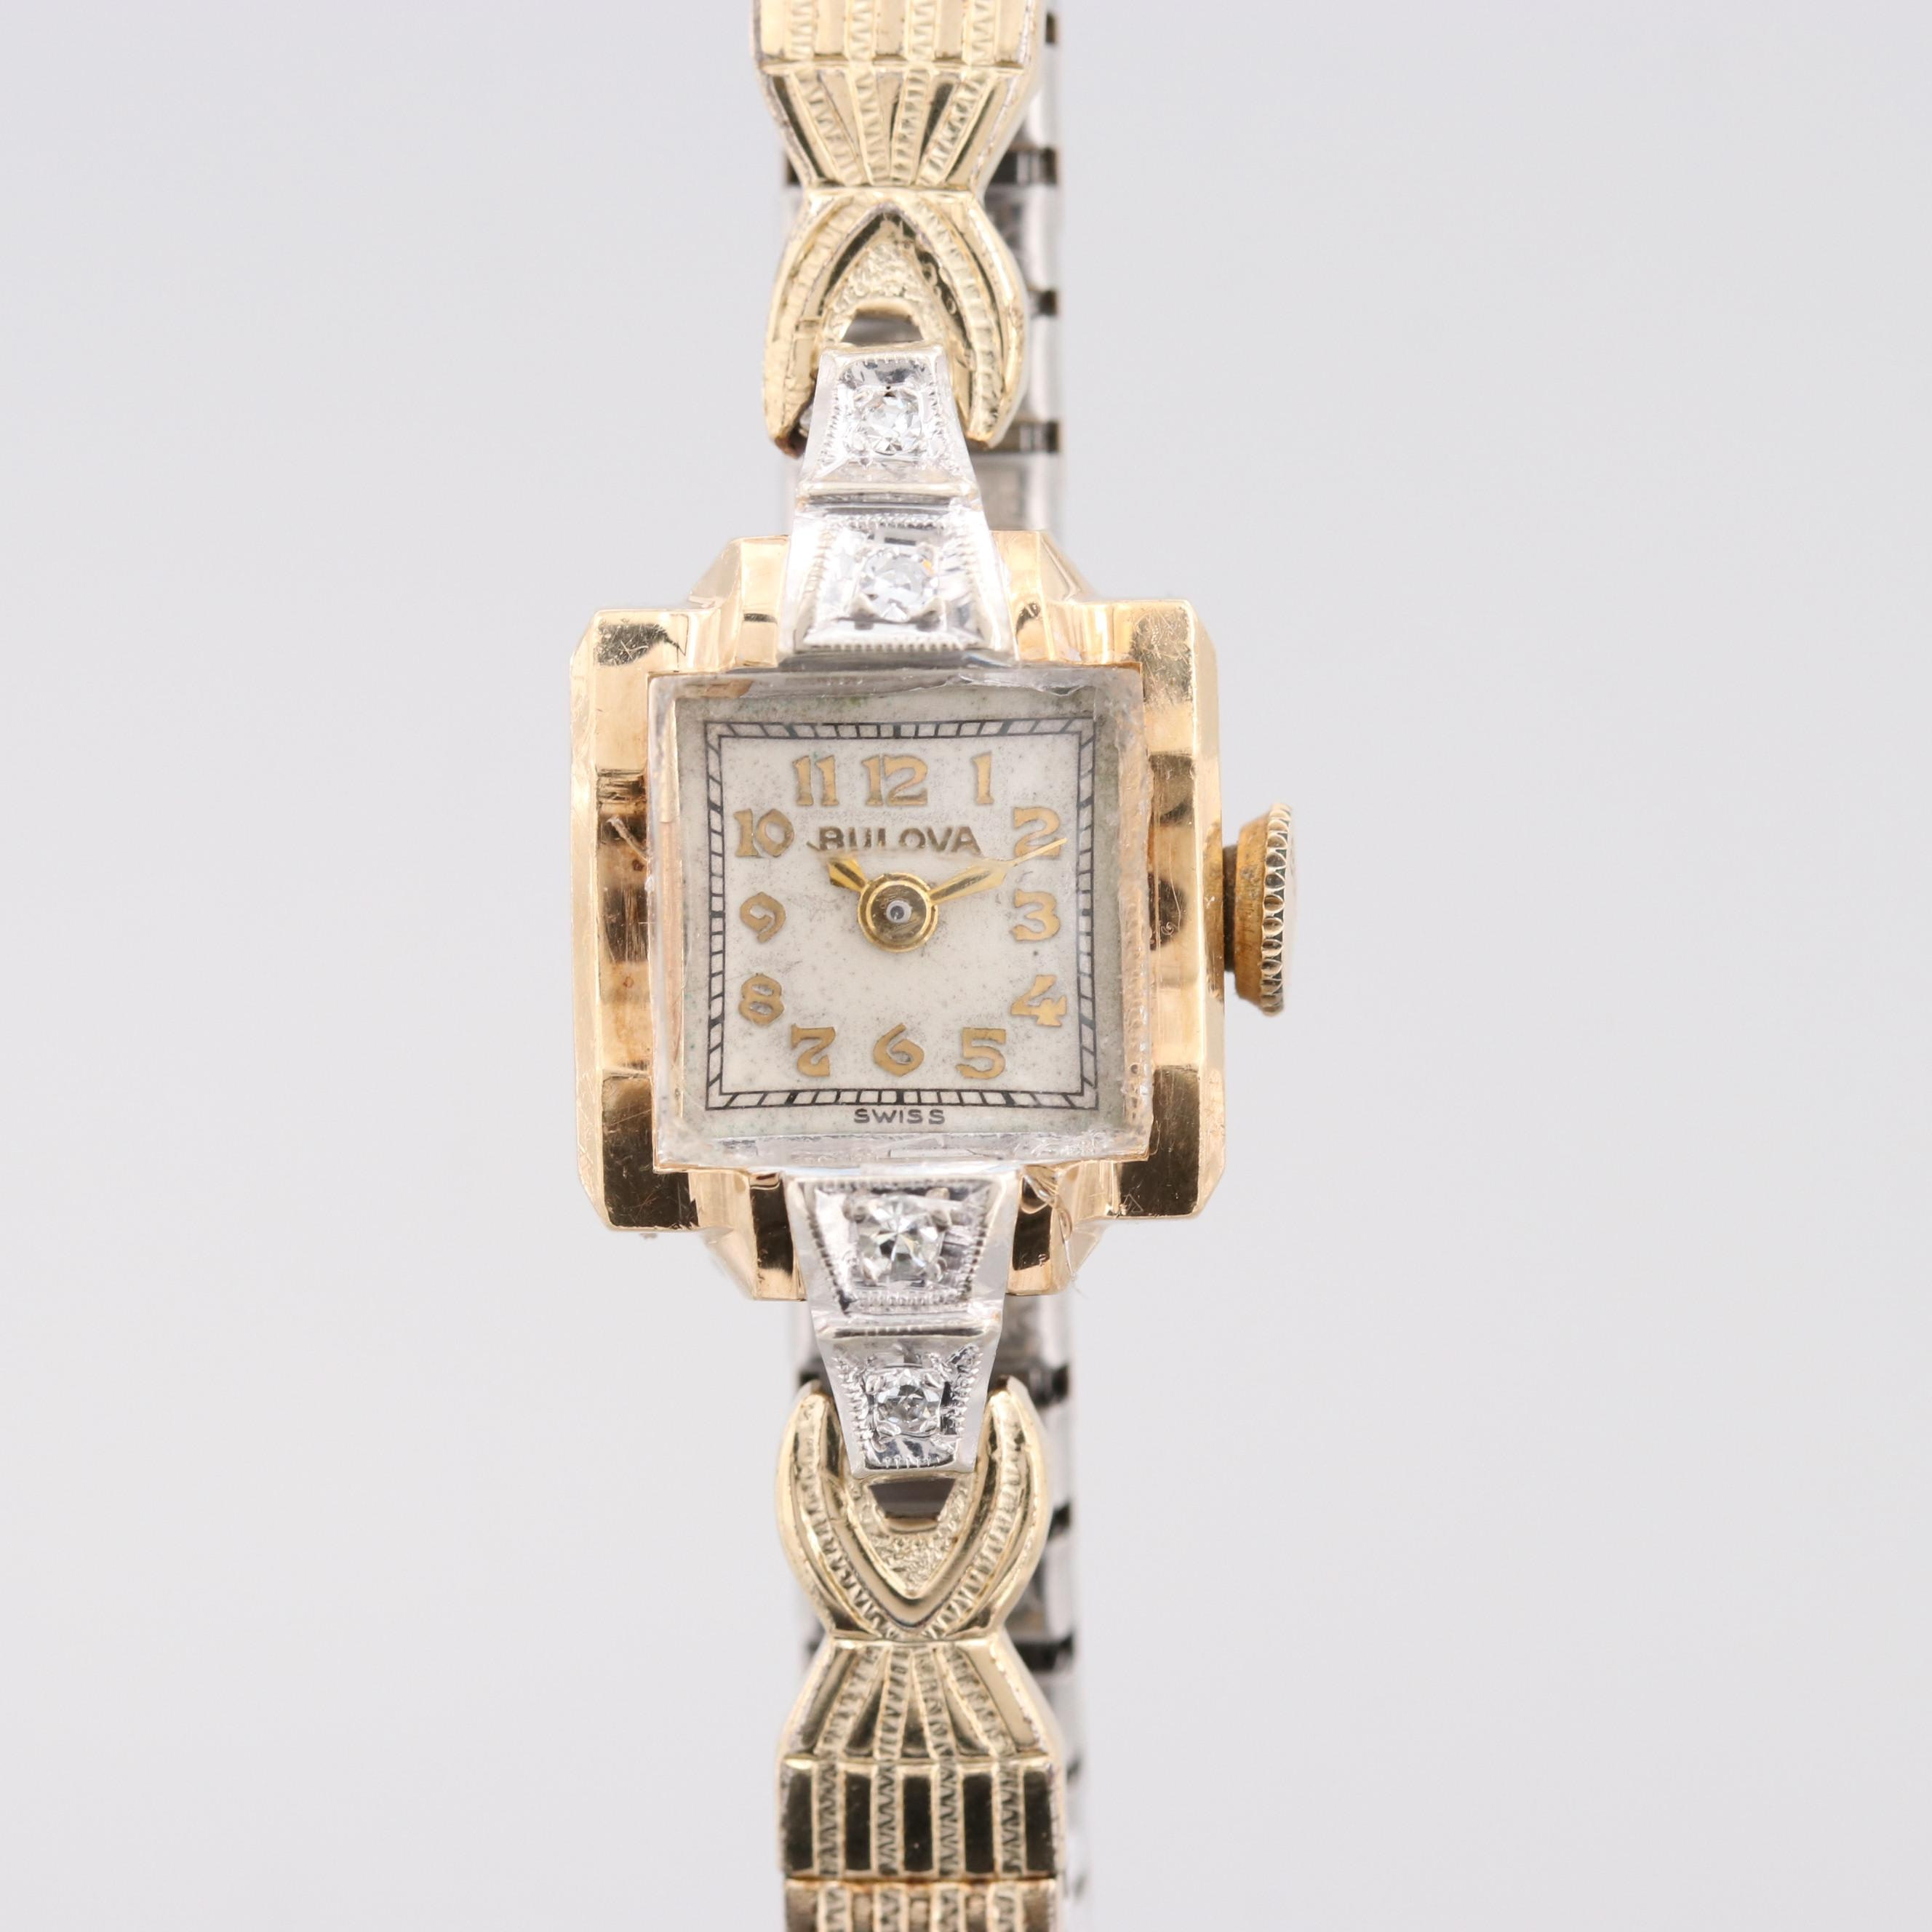 Bulova 14K Yellow Gold Wristwatch With Diamonds